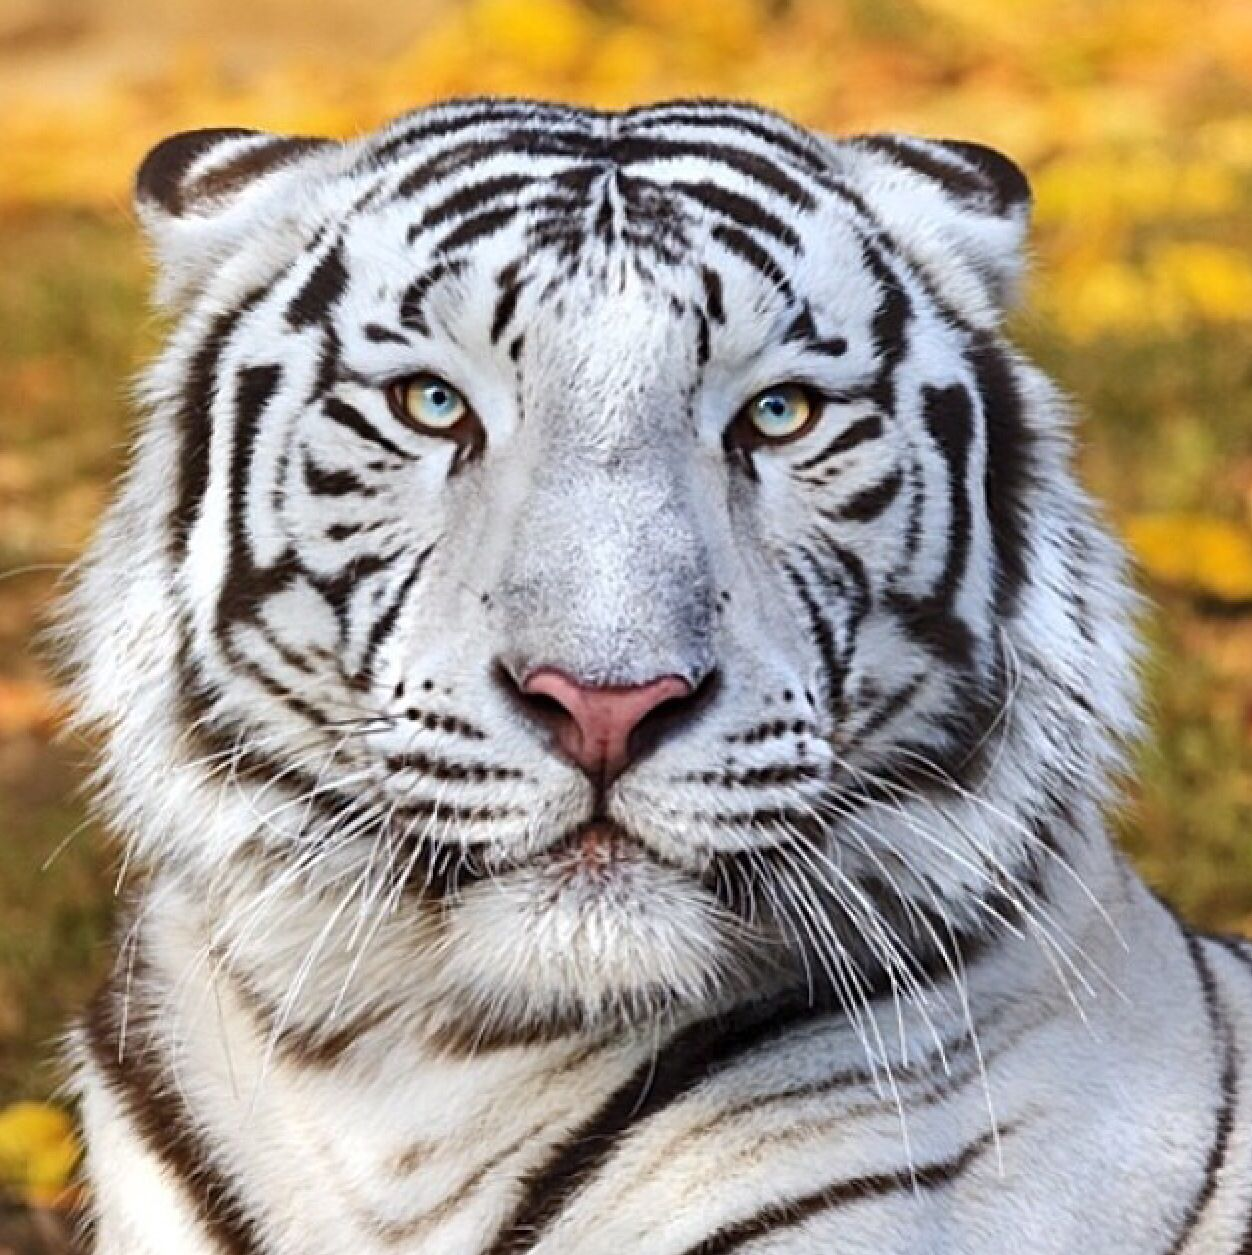 Pin By Gokhan Canbaz On I Just Nature White Tiger Tiger Photography Tiger